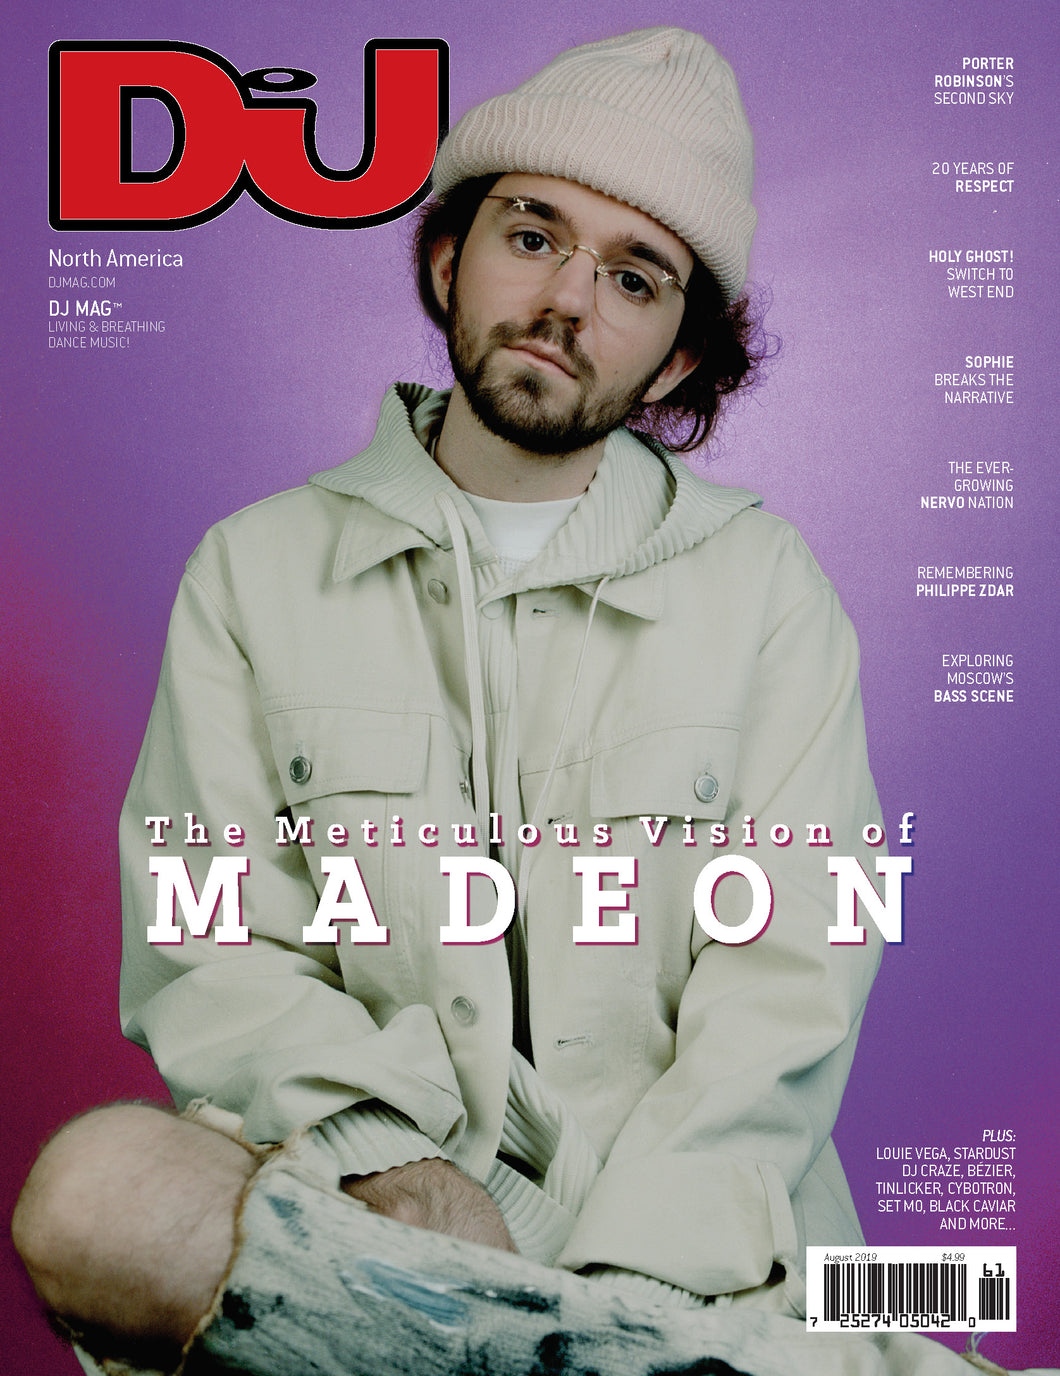 DJ Mag August 2019 (North America) - digital